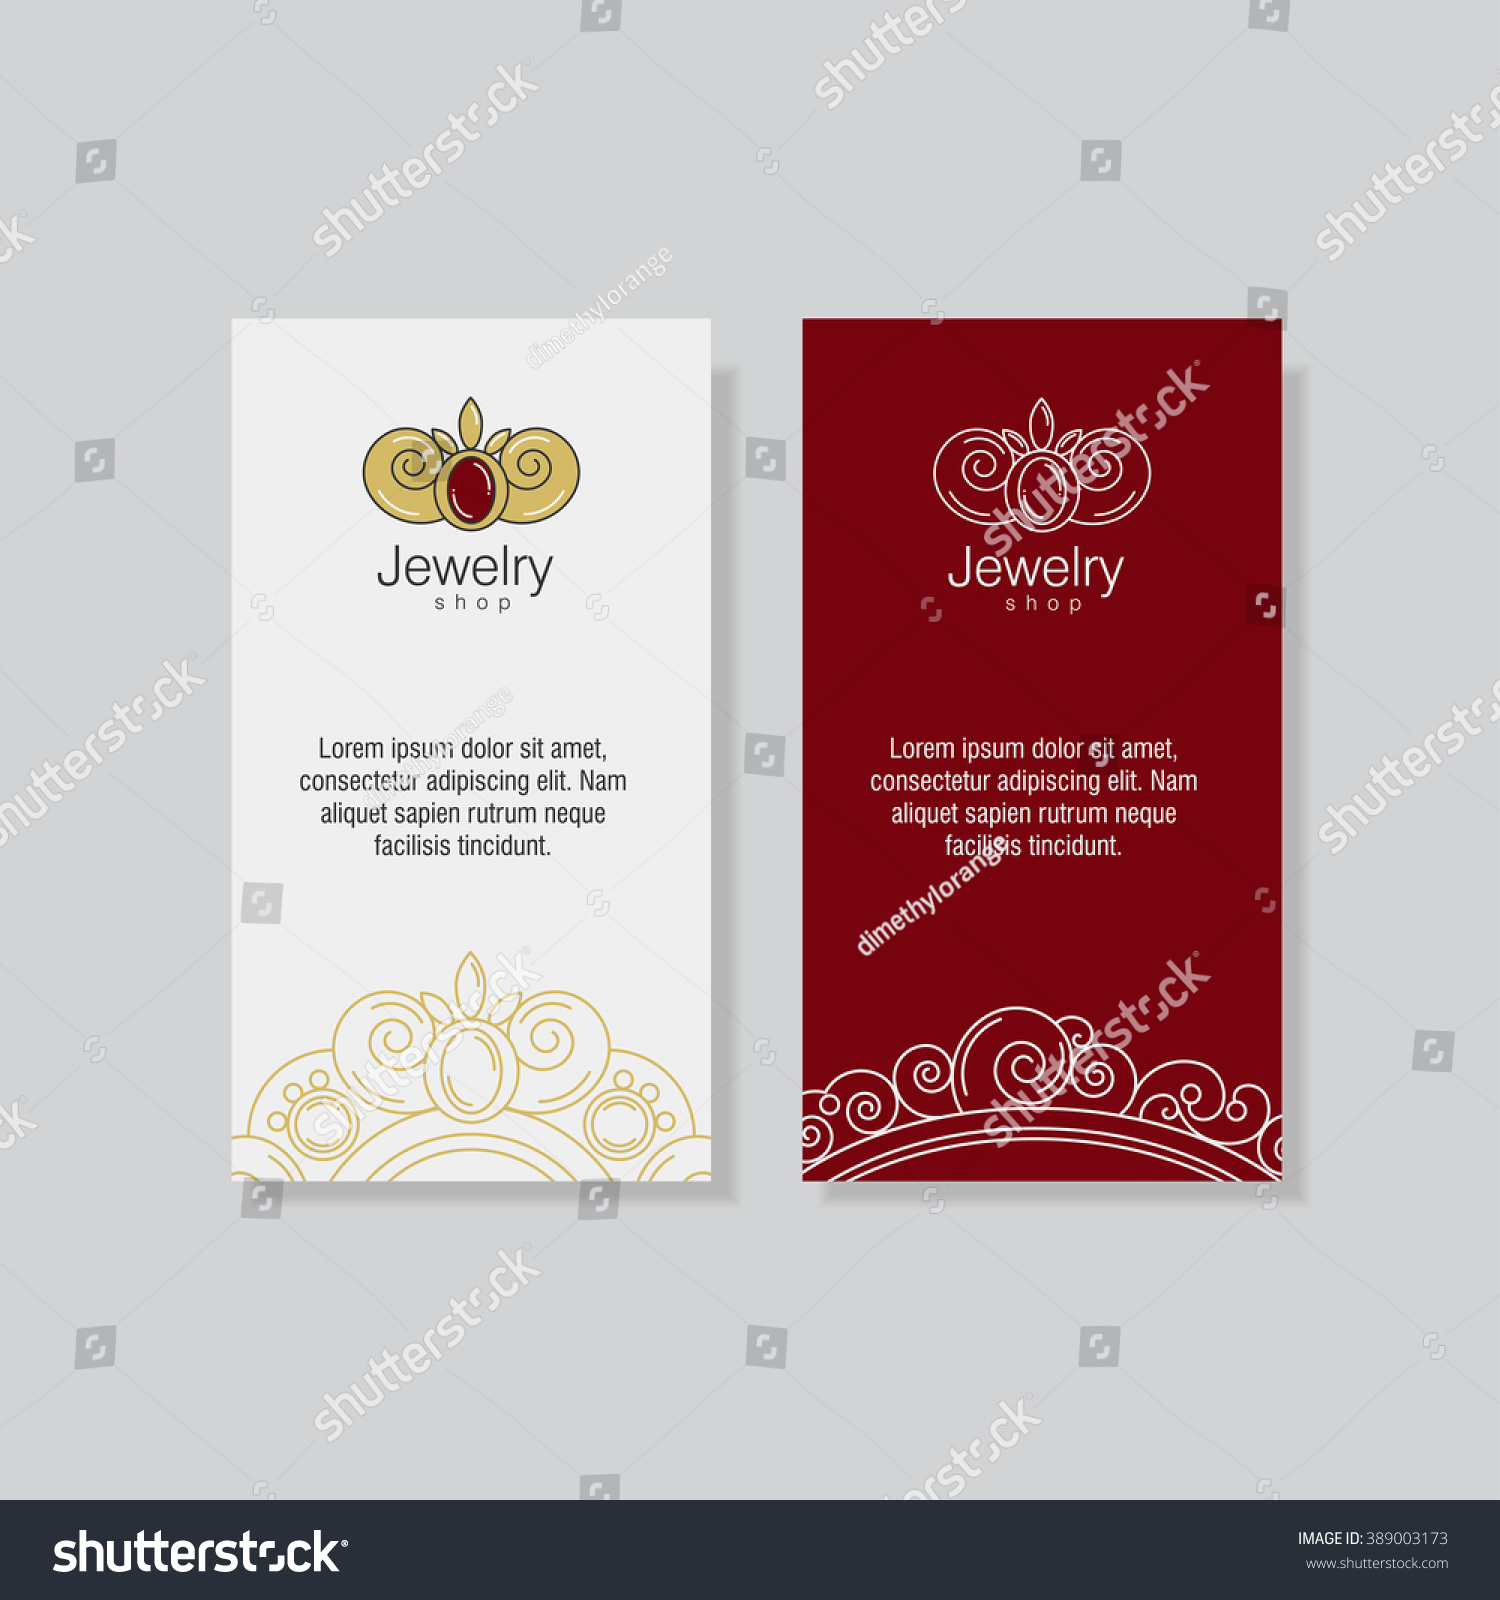 Corporate Identity Business Cards Brochures Jewelry Stock Vector ...